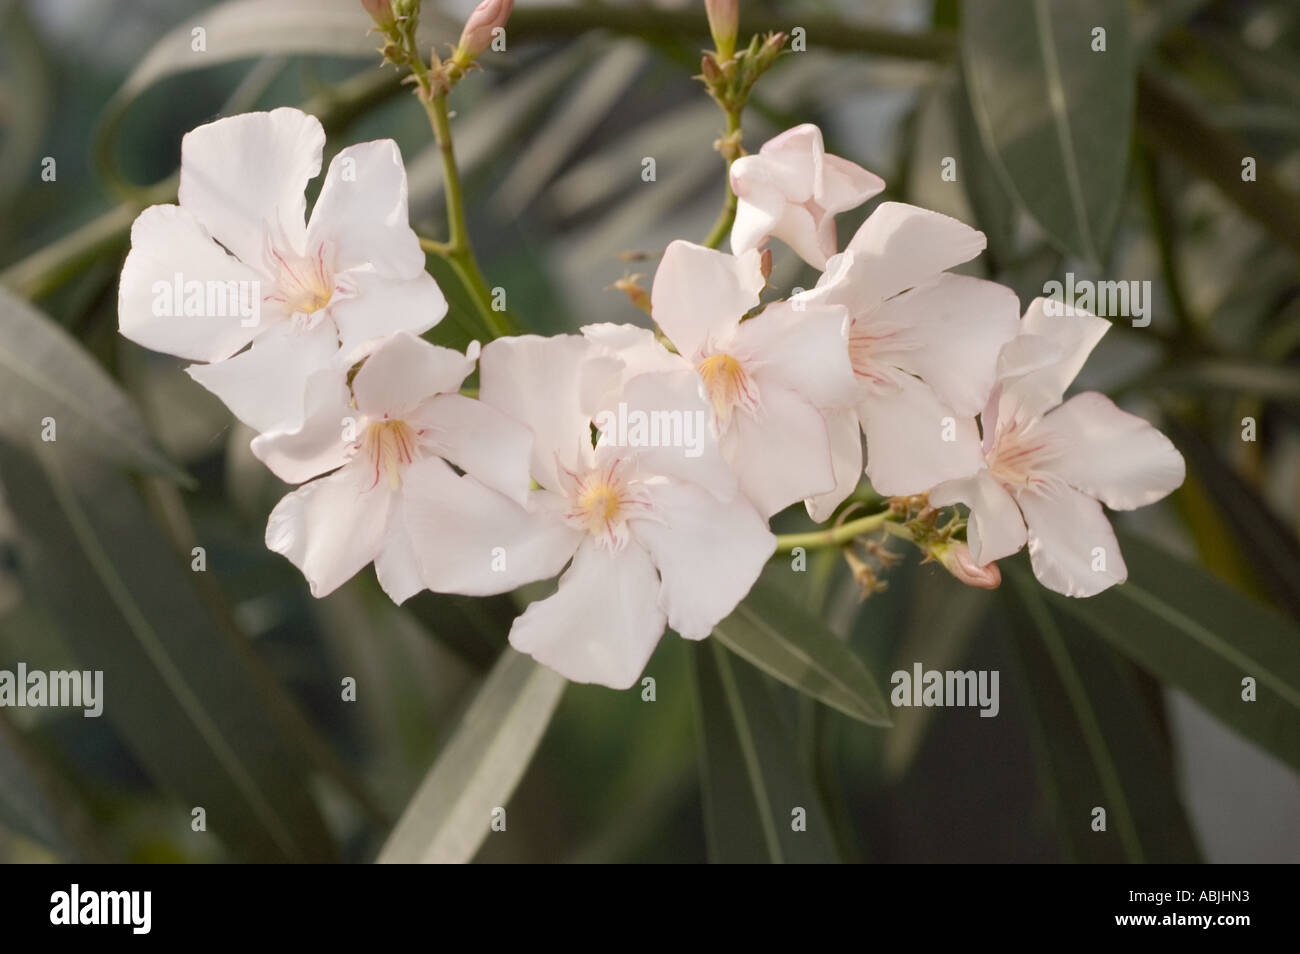 White Oleander Flowers Stock Photos White Oleander Flowers Stock